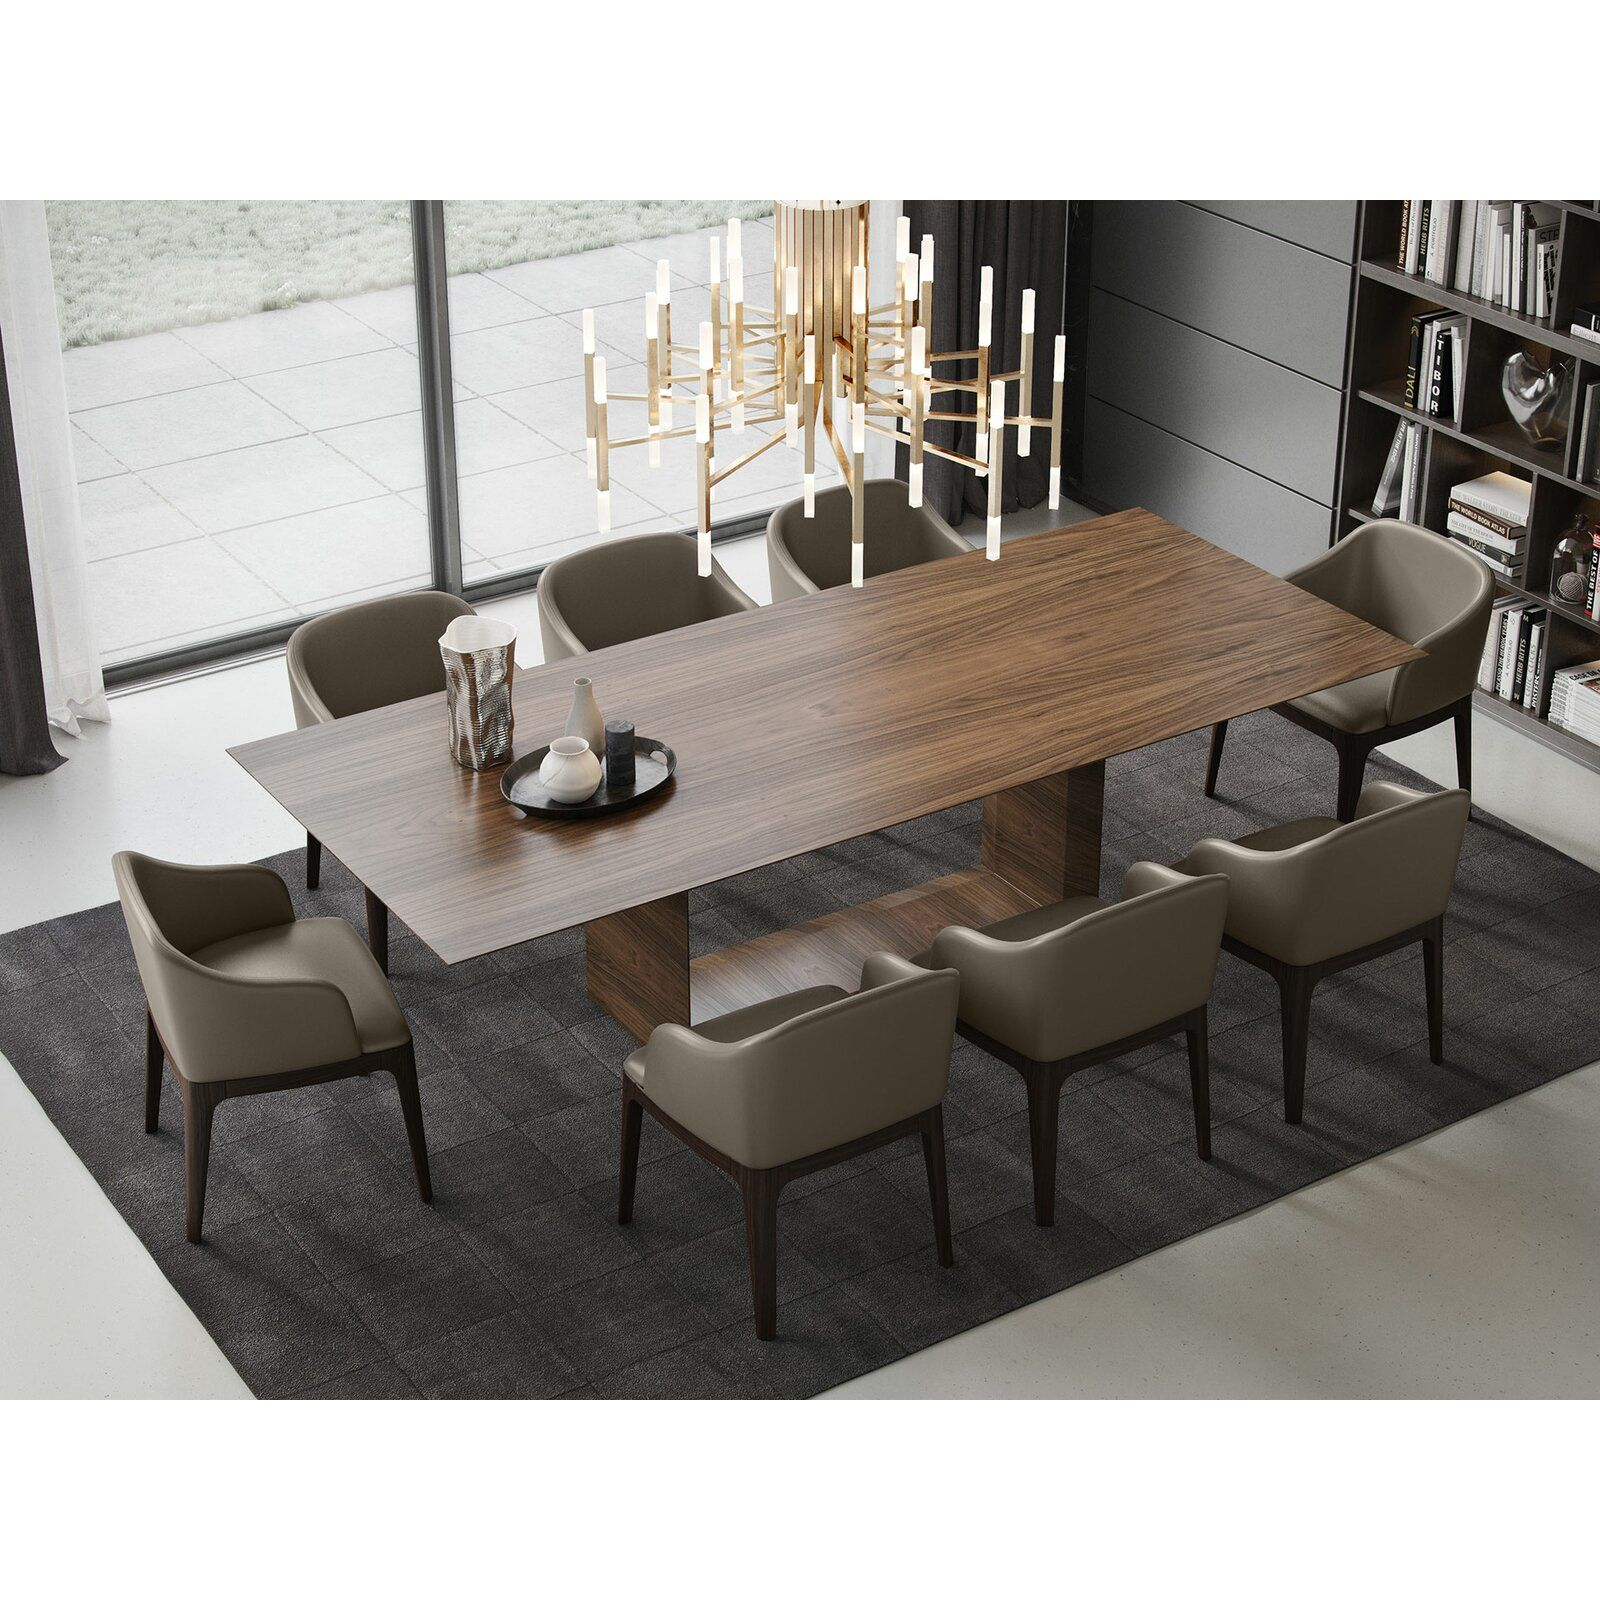 20++ Greenwich dining table and chairs Best Choice